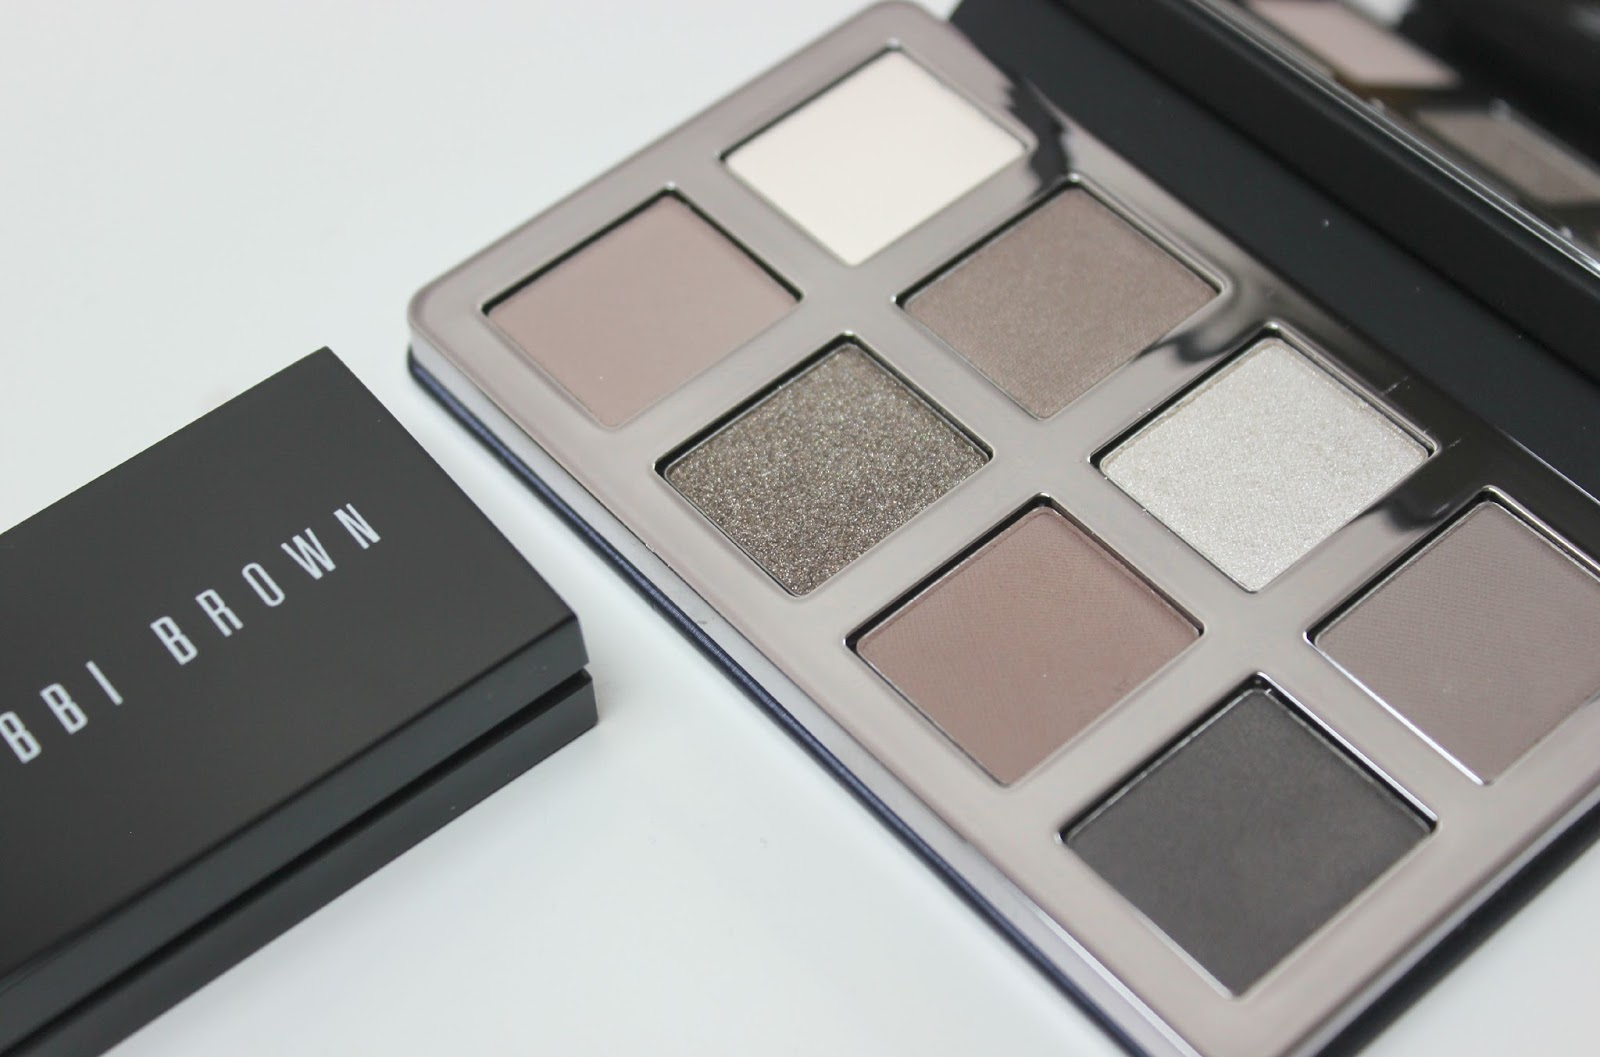 Bobbi Brown Greige Fall 2015 Makeup Collection recommendations